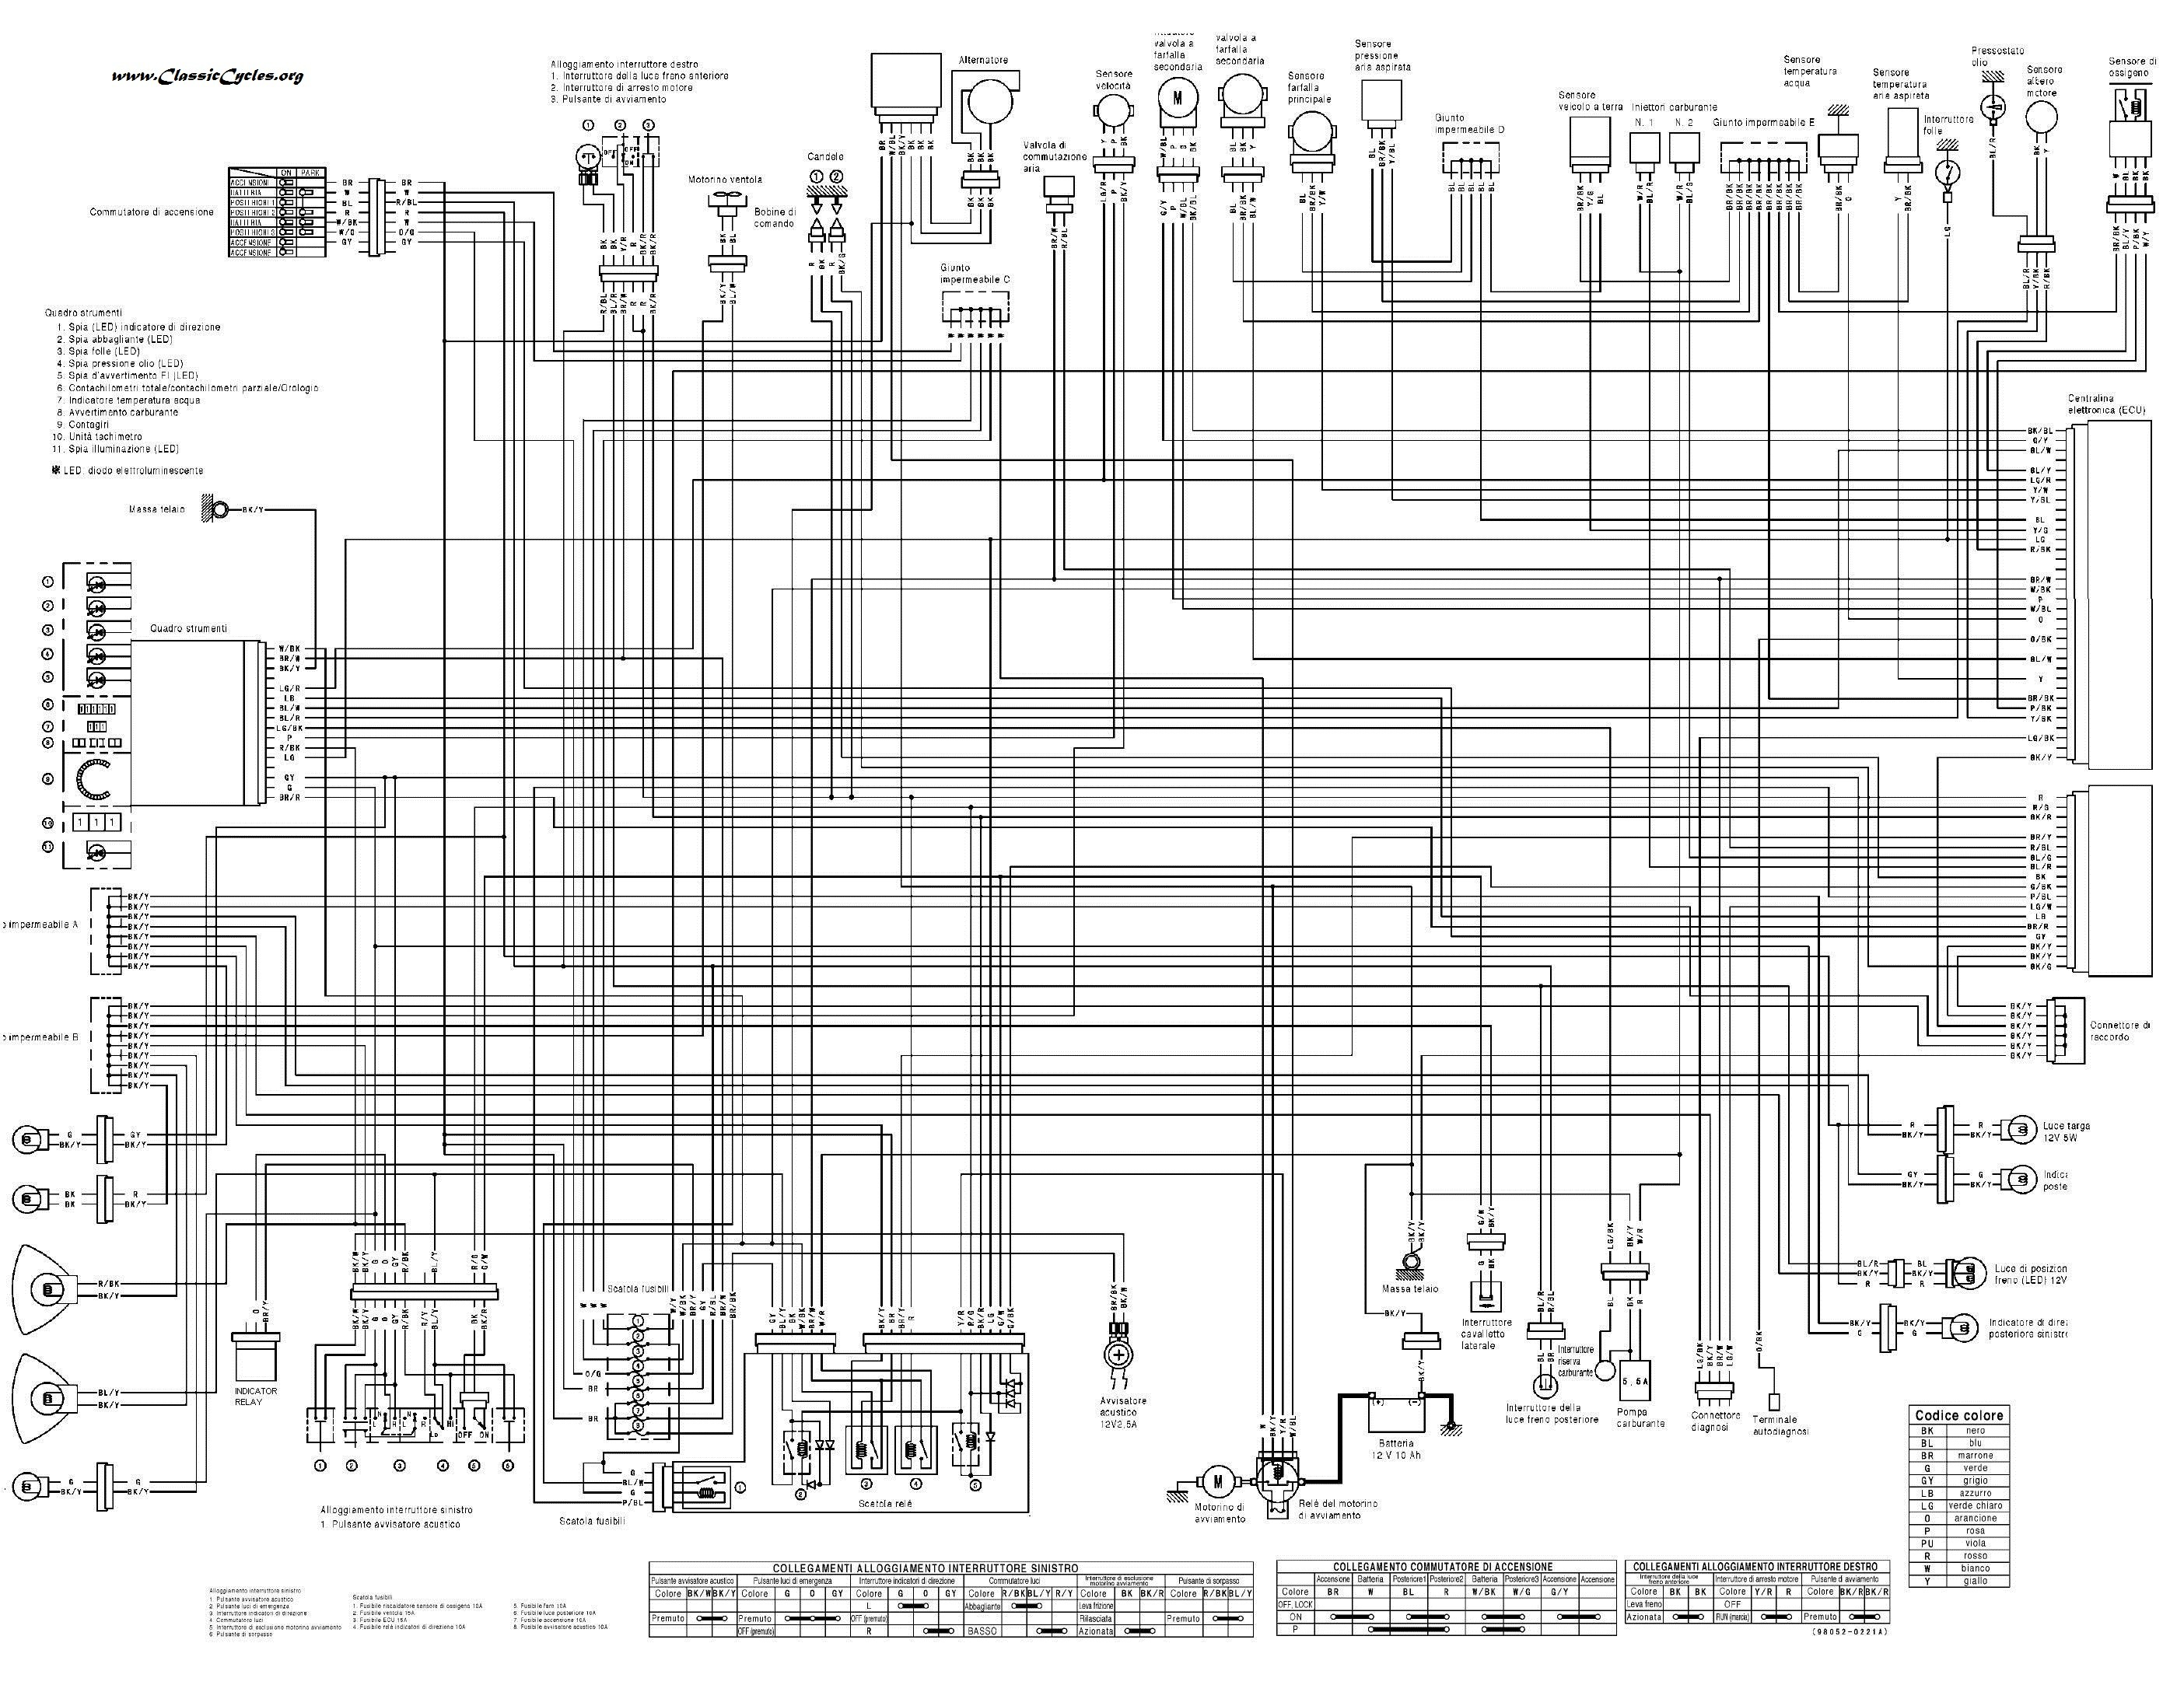 1998 Dodge Durango Engine Diagram 2003 Emissions Free Download Wiring Of